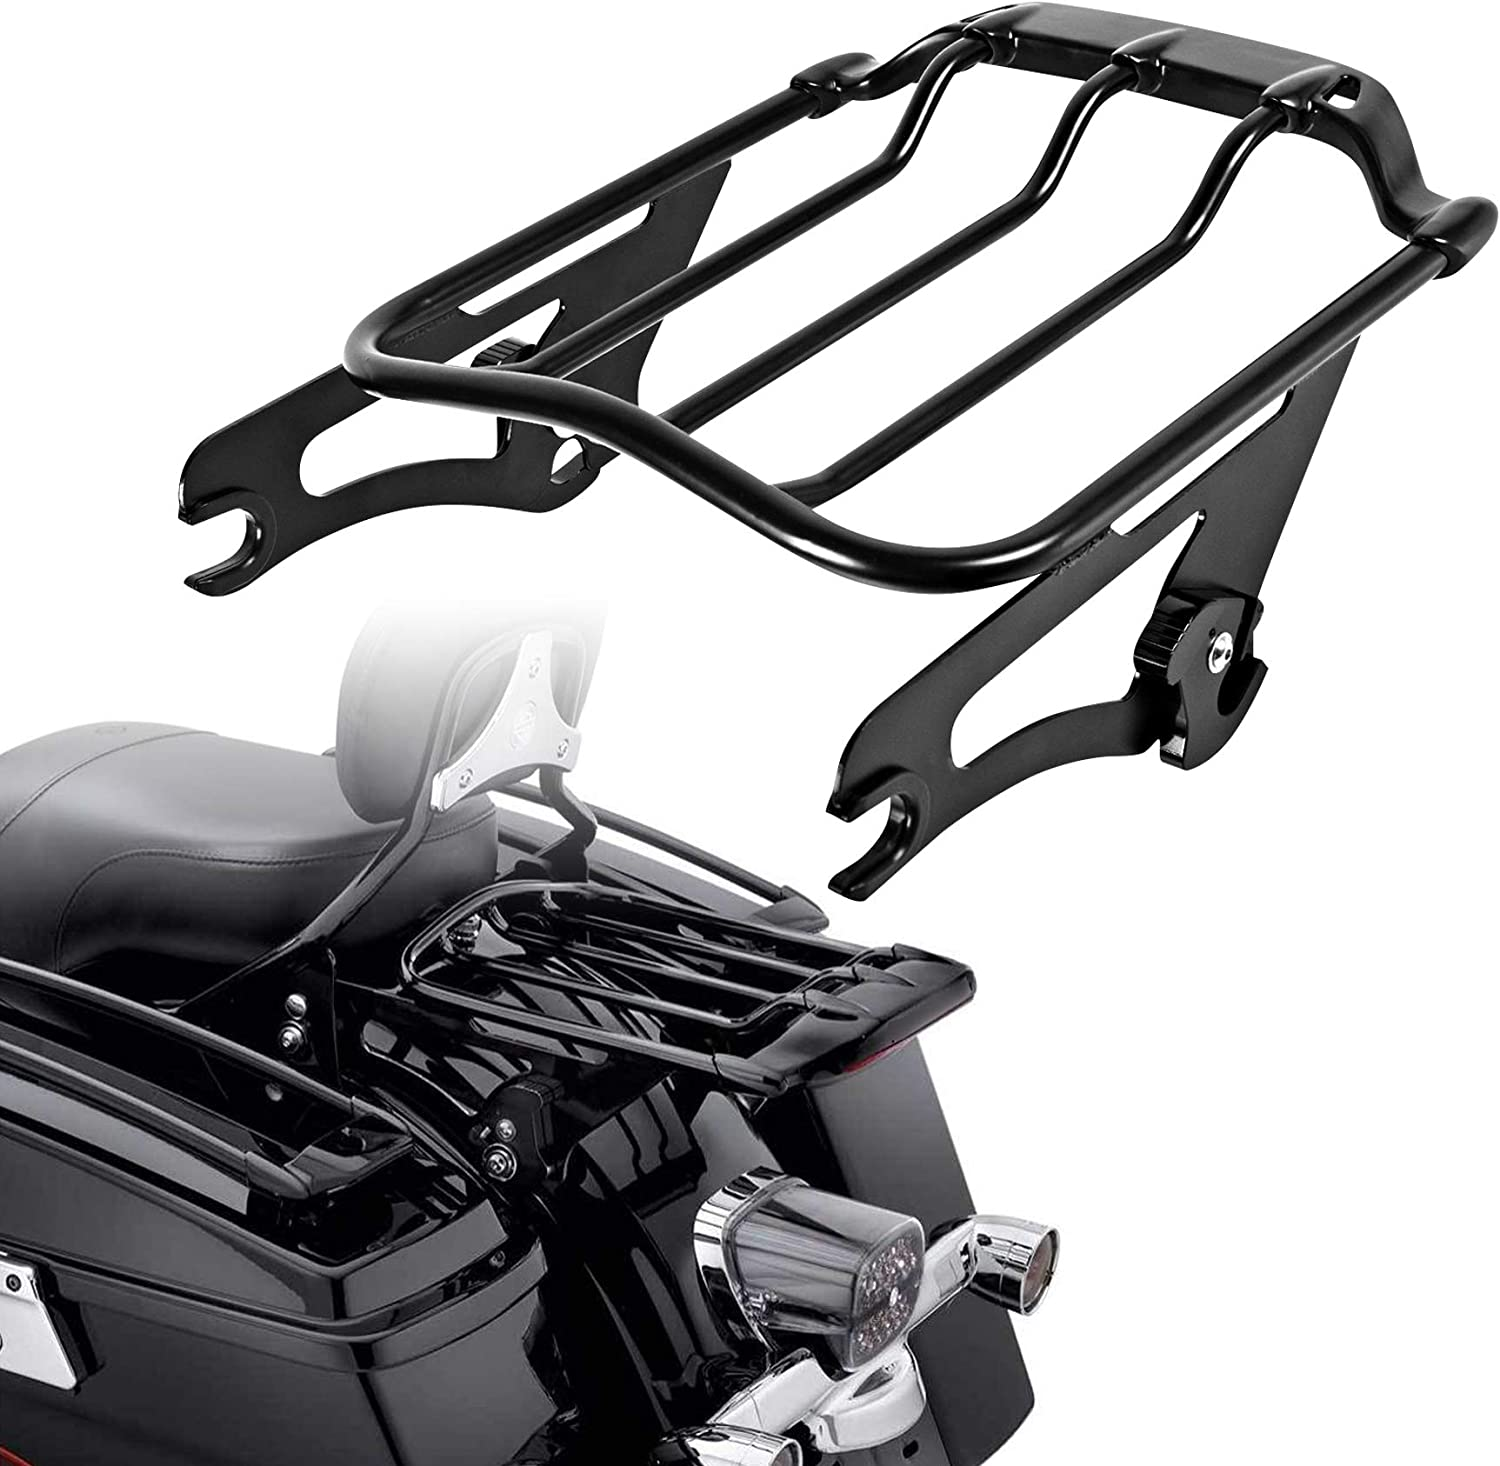 Electra Glide Standard FLHT RG Special FLTRXS Fits 09- Touring Street Glide FLHX Air Wing Detachables Two-Up Luggage Rack for Road King FLHR Ultra Limited FLHTK CVO Road Glide FLTRXSE